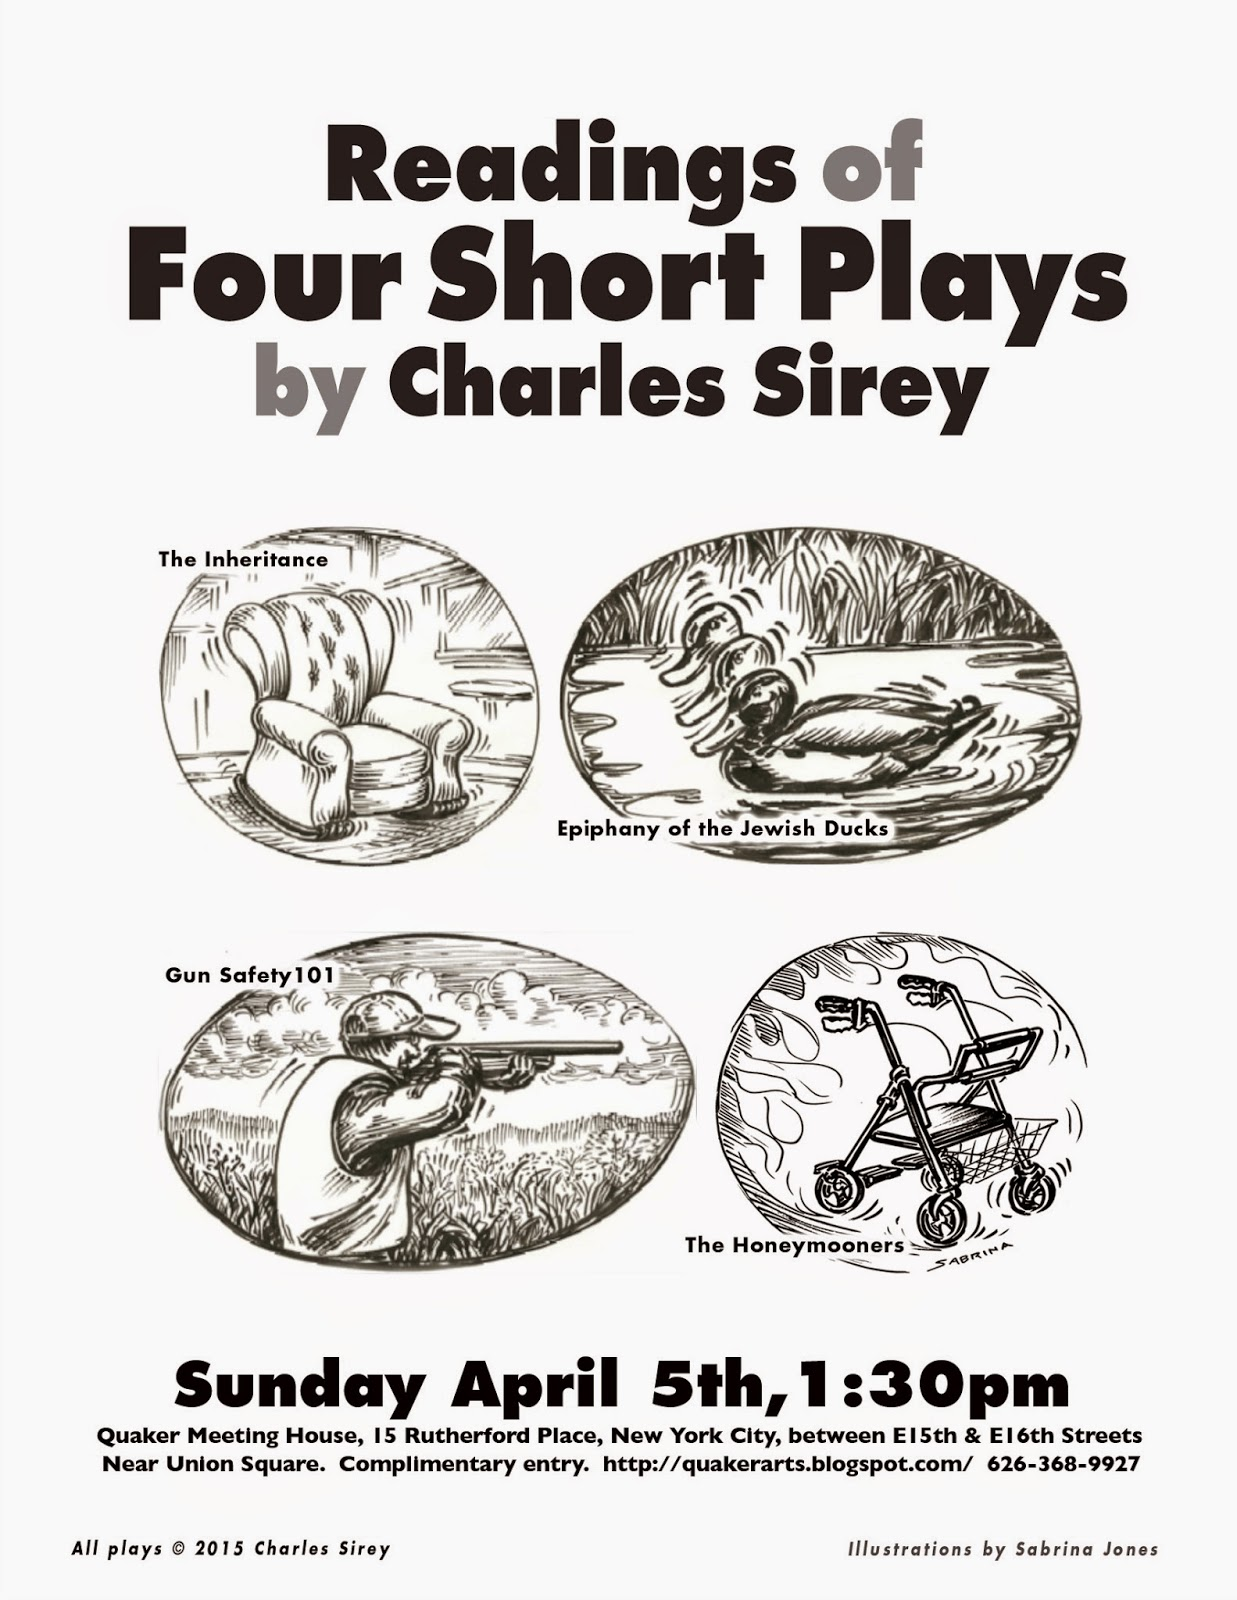 Four Short Plays by Charles Sirey 4/5/15 The Inheritance, Ephiphany of the Jewish Ducks, Gun Safety 101, the Honeymooners